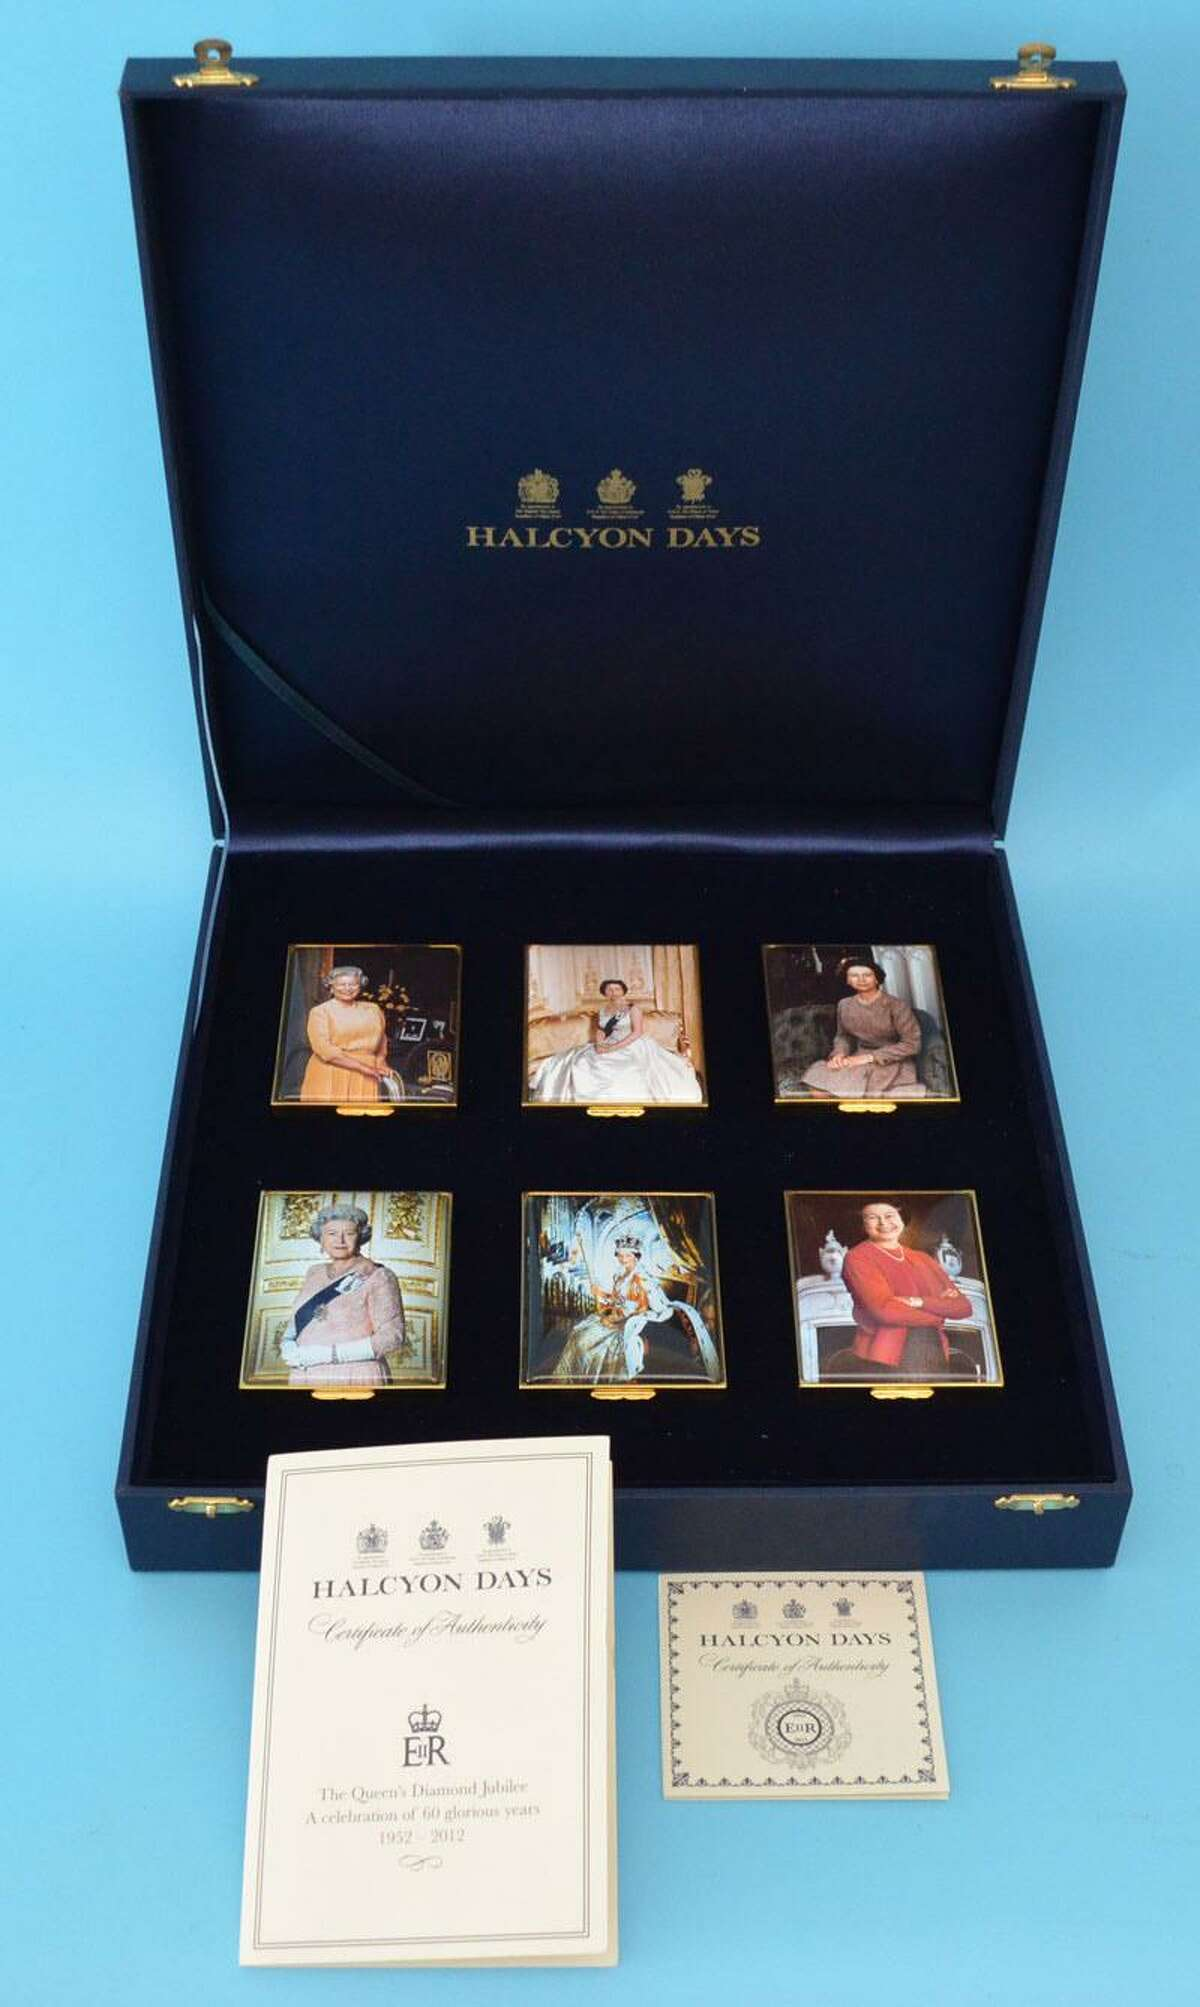 A box set of six Halcyon Days Enamel Queens Jubilee, of which just 25 were made, will be auctioned off from the estate of Charles Barlow, who owned the last residence on New Milford's Village Green. The auction will be held online with Applebrook Auctions on April 26, 2018.